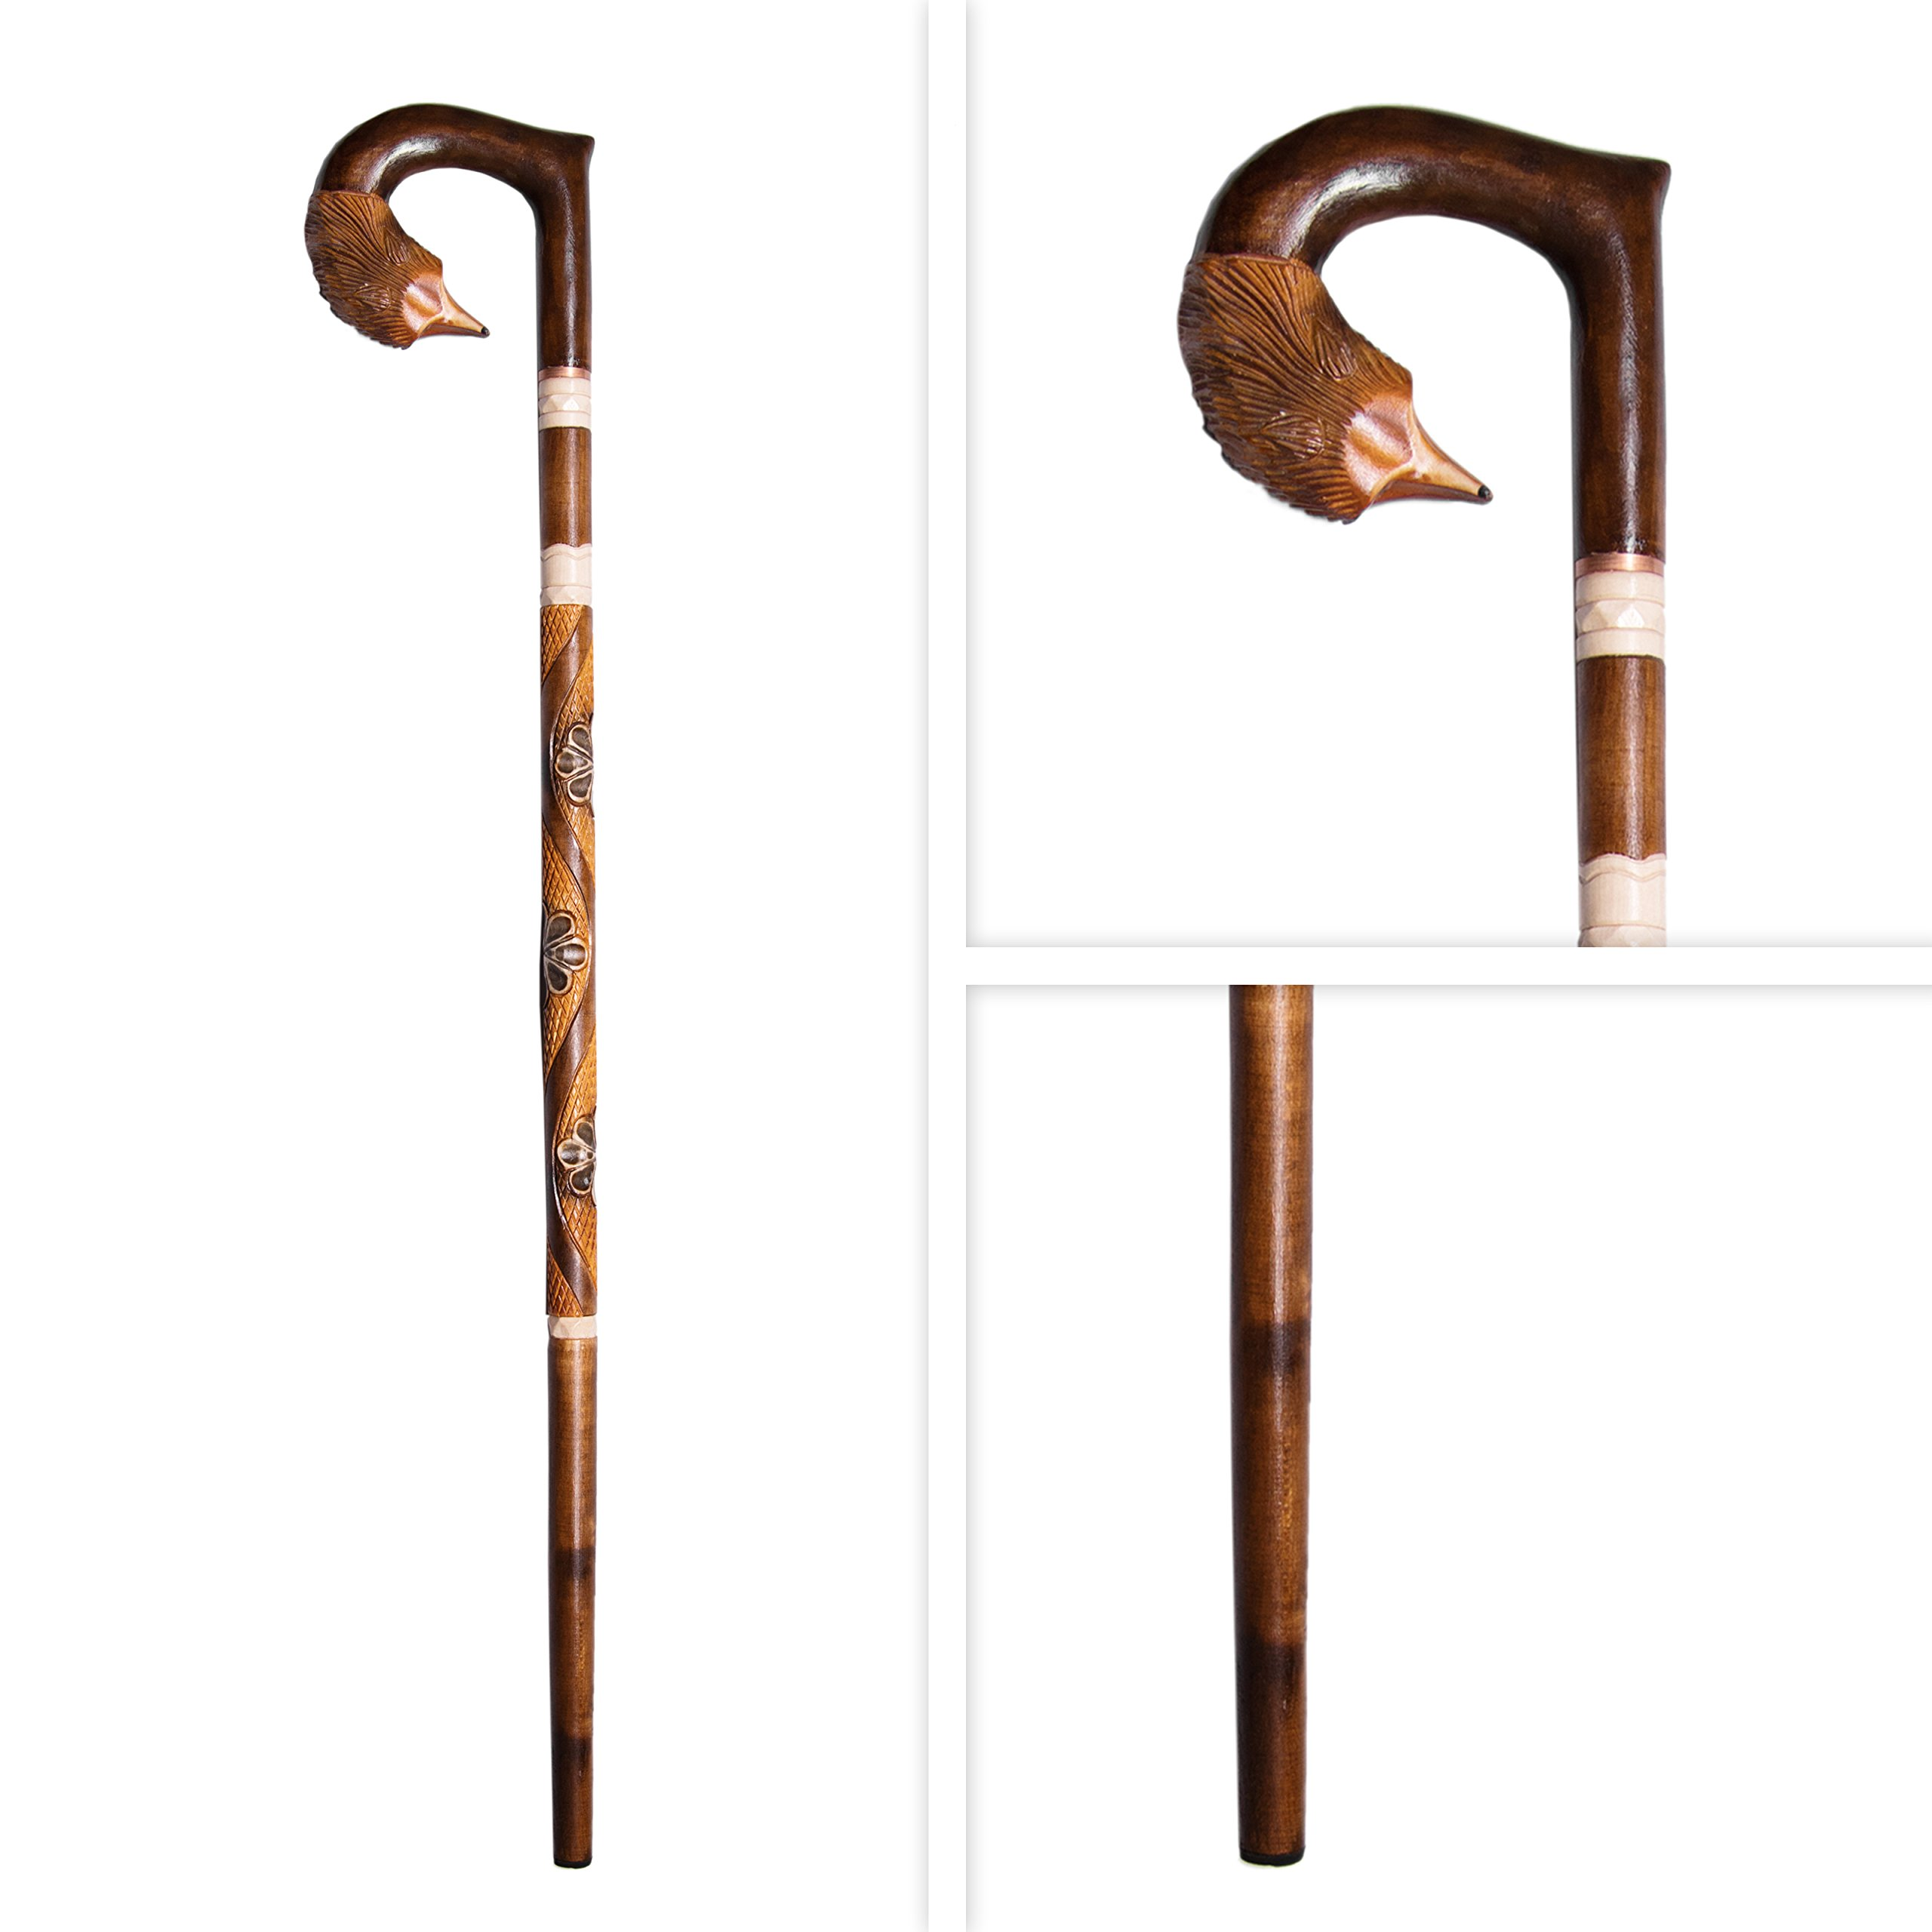 Wooden Walking Stick For Women New Stick for Men - Wooden Walking Cane Hand Carved Womens Walking Stick 35 - 36 Inches - Fashionable Sturdy (Wood) by Wooden Look